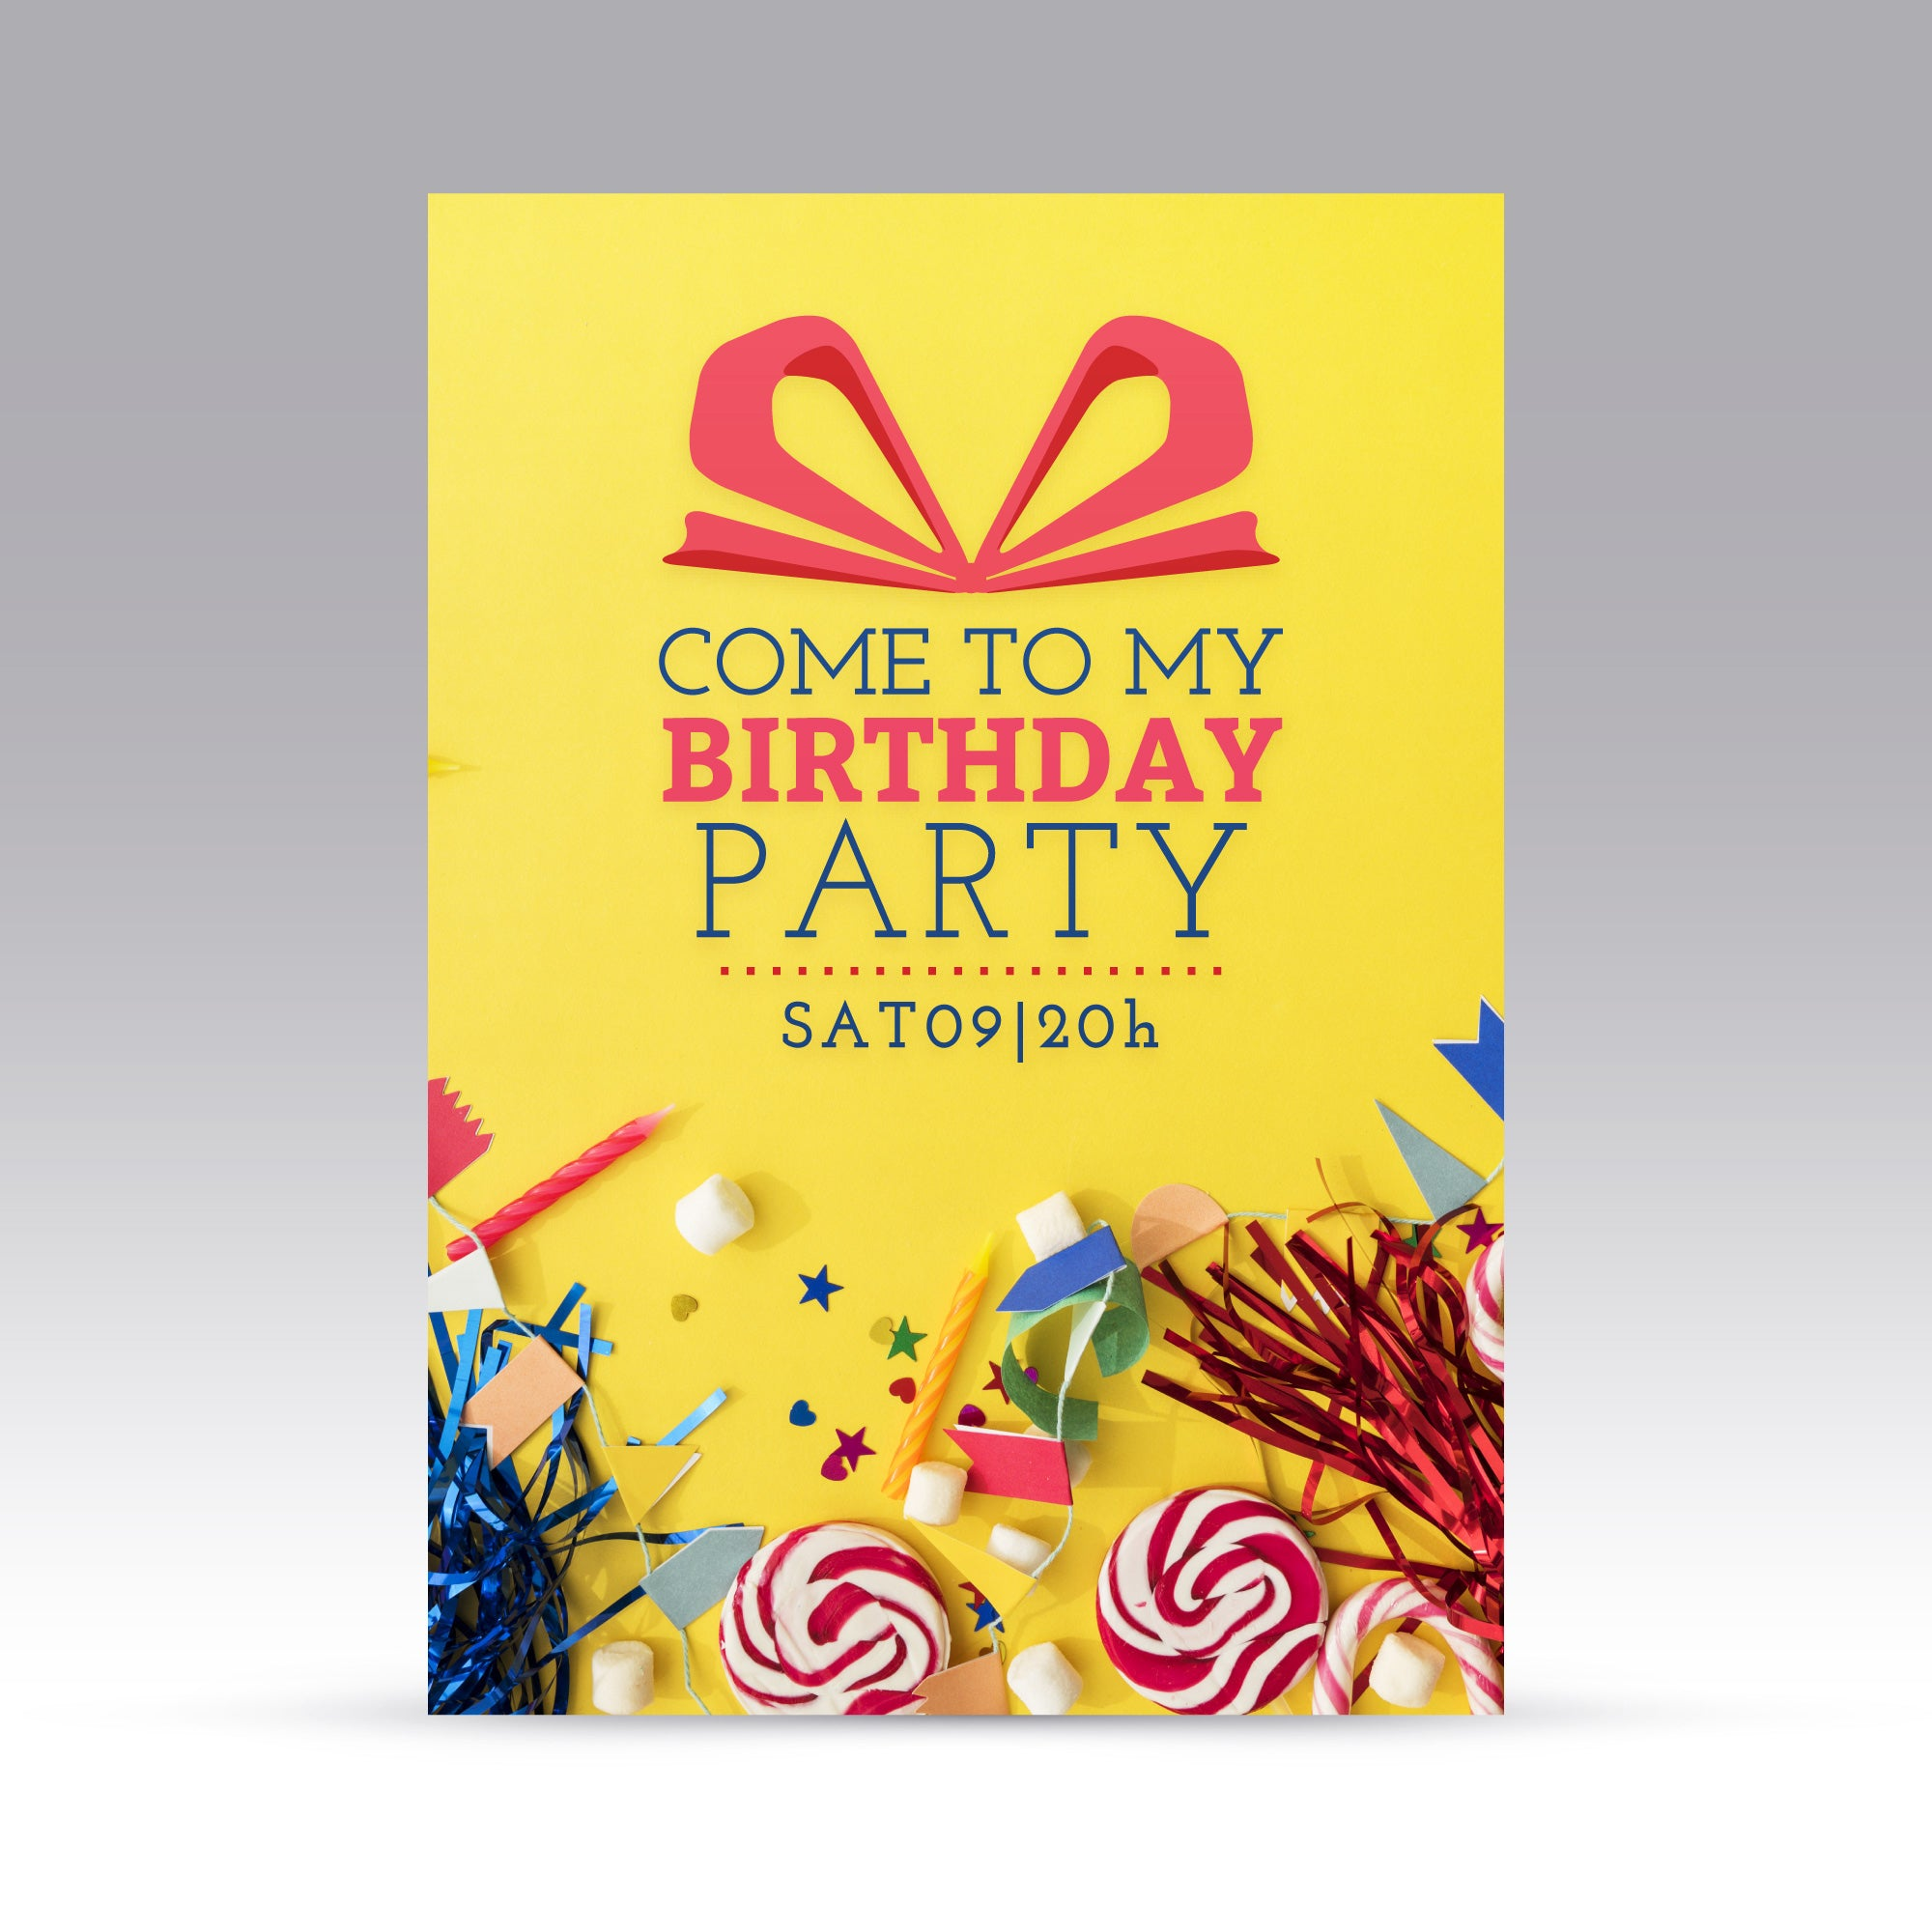 Come To My Birthday Party Simple Theme Invitation Card Set Of 25 Pcs